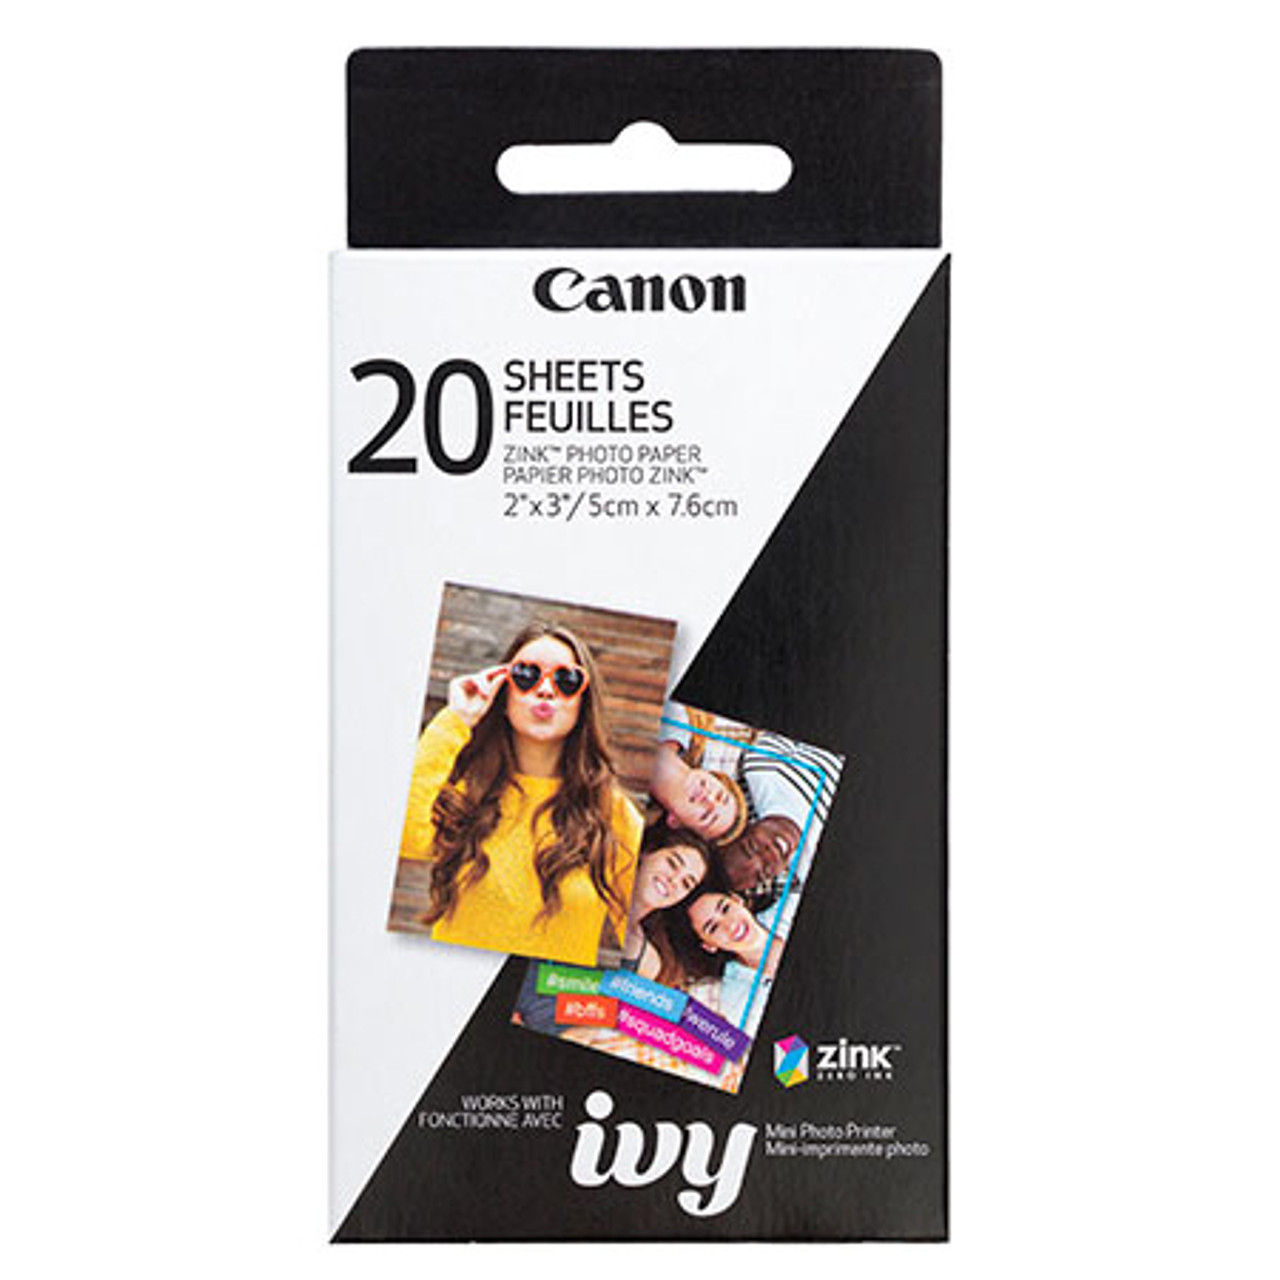 CANON ZINK ZP-2030 PHOTO PAPER PACK (20 SHEETS)